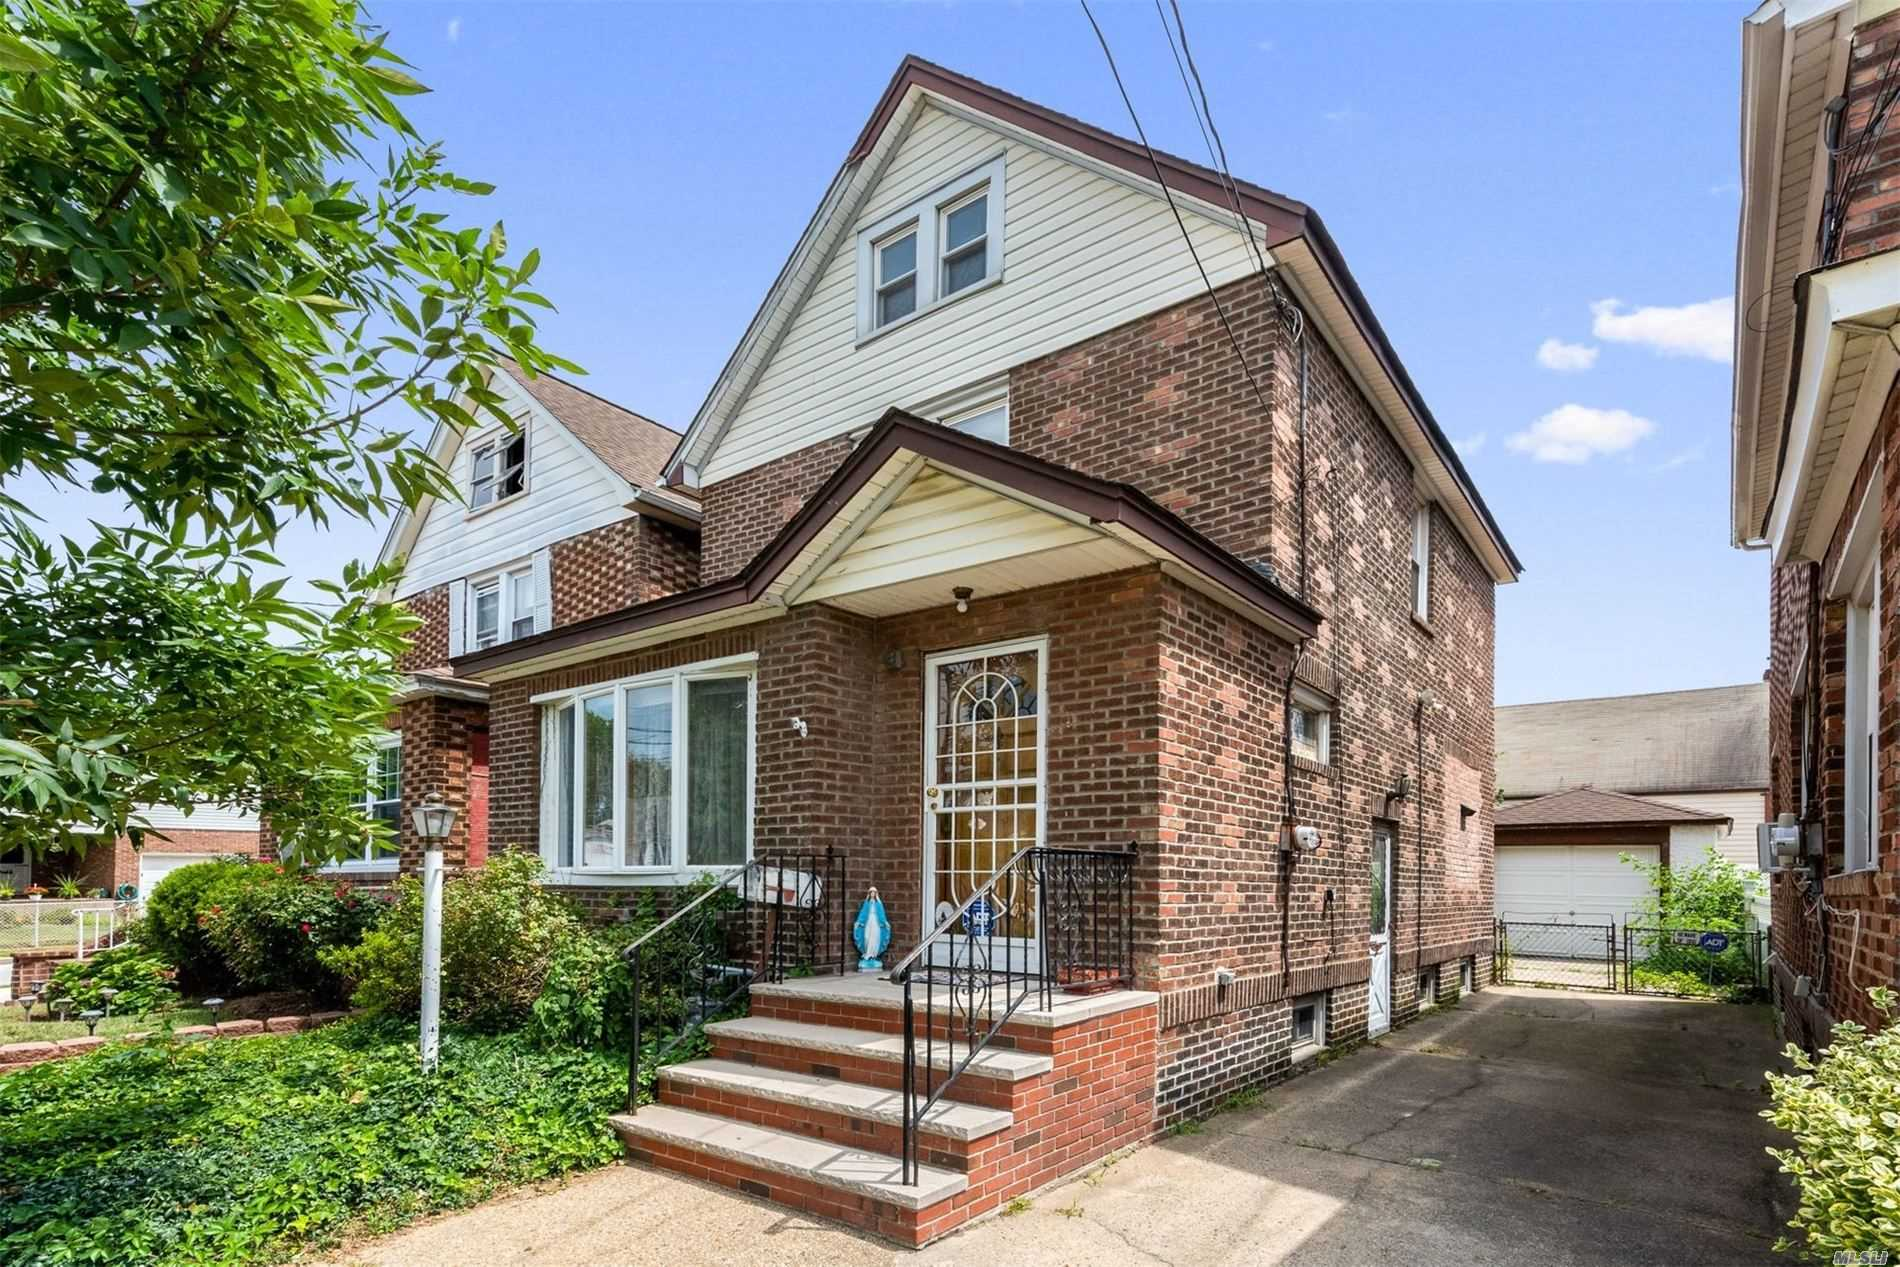 Beautiful Brick Colonial. This home features living room, formal dining room. Eat in kitchen. 3 bedrooms, 1 full bathroom, Full finished basement. Gas heat and hot water heater. One car Garage with a driveway . Close to public transportation and shoping.